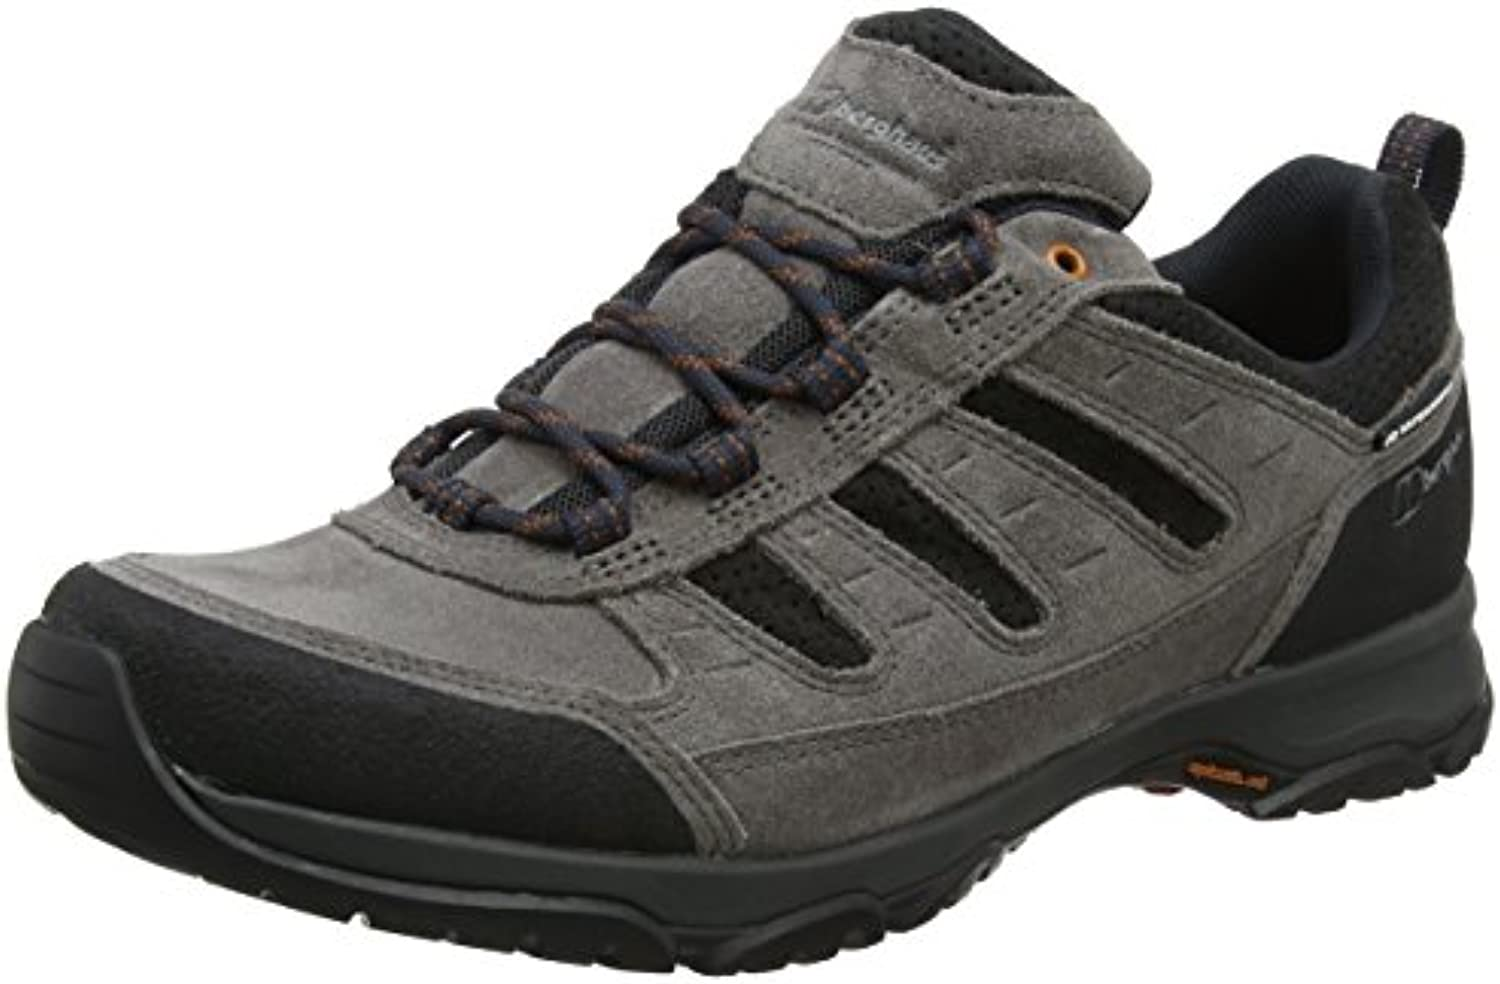 Berghaus Expeditor Active Aq Walking Shoes, Zapatillas de Senderismo para Hombre